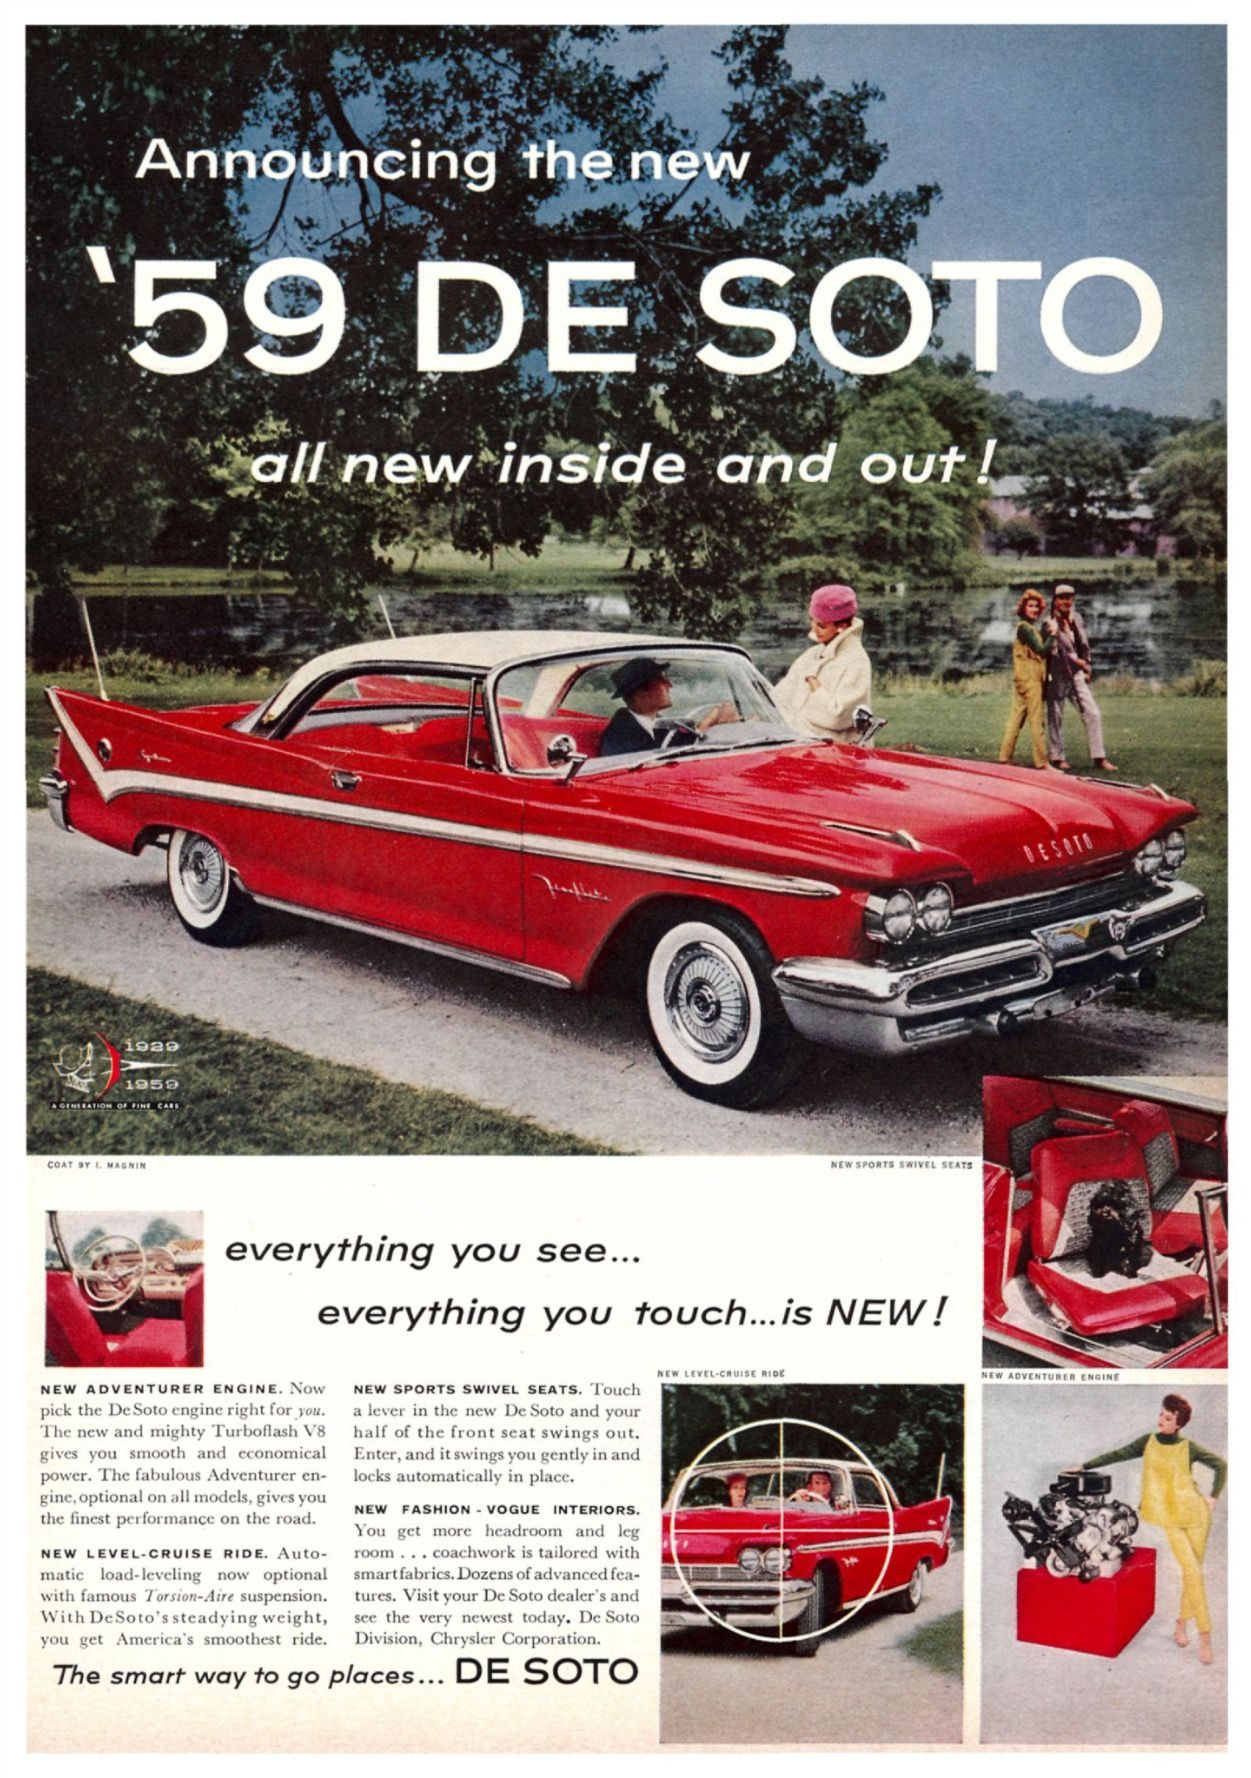 1959 Desoto Ad Automobile Advertising Classic Cars Vintage Car